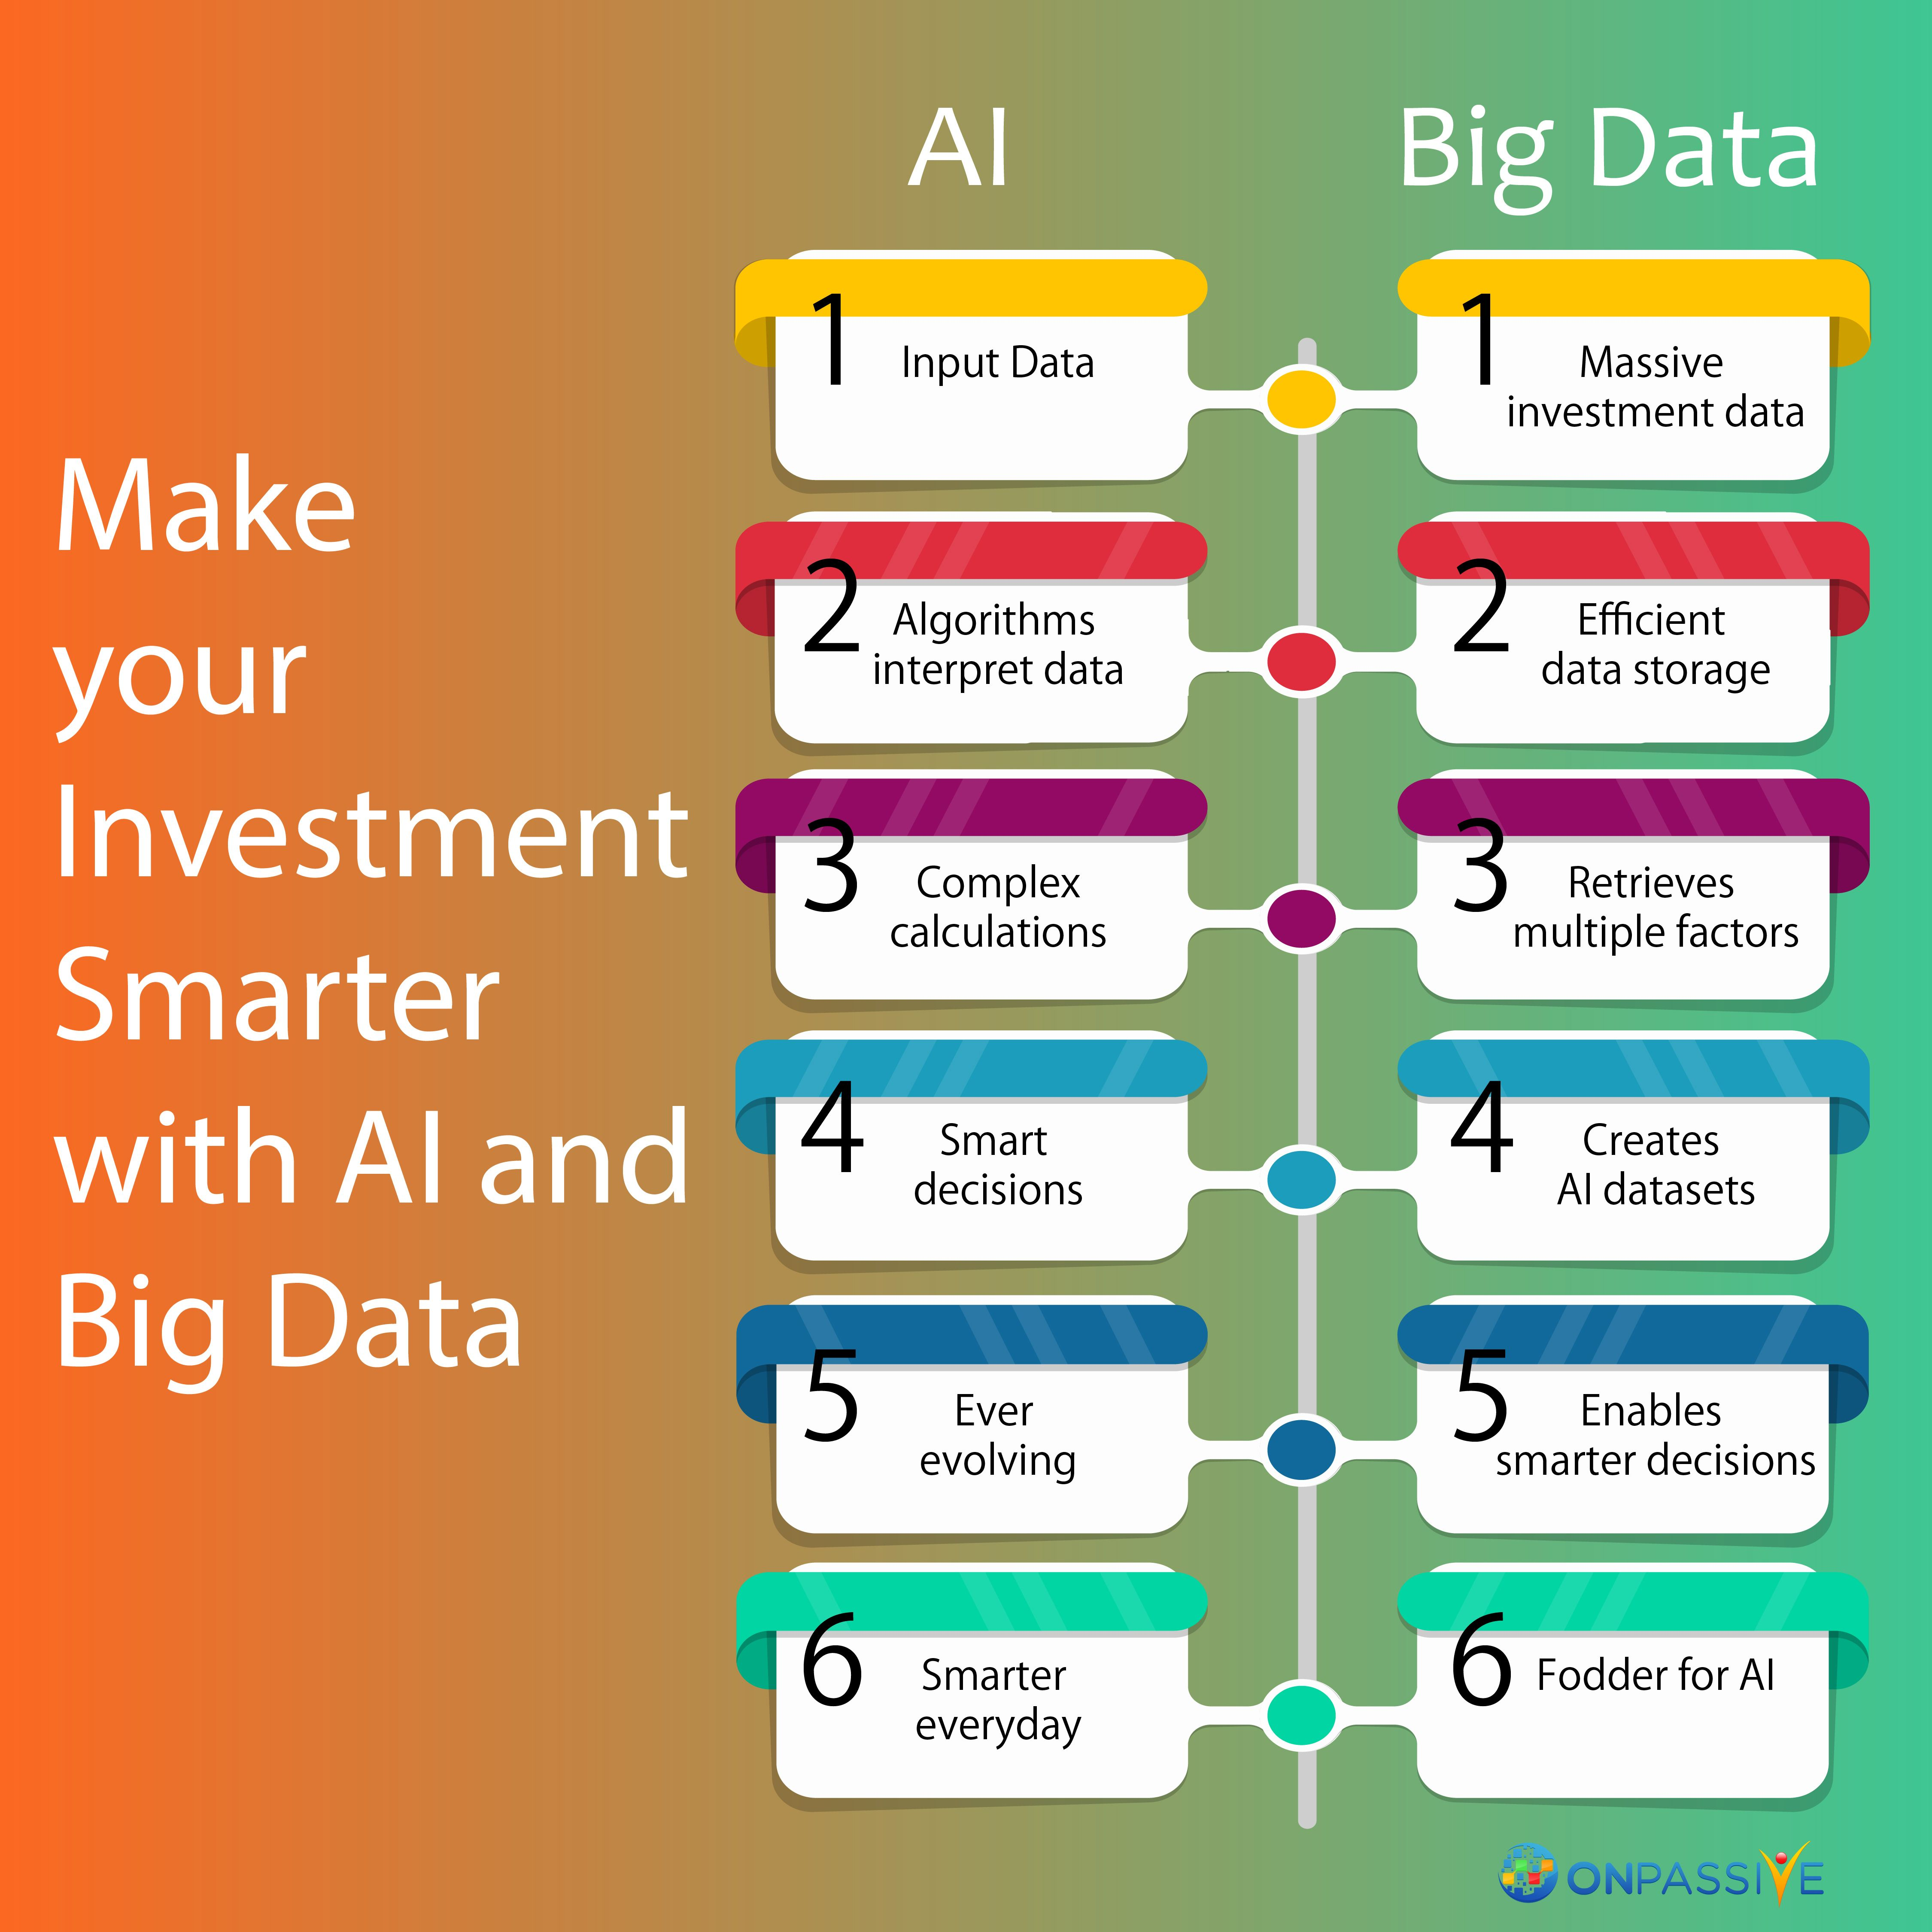 Make Your Investment Smarter With Ai And Big Data